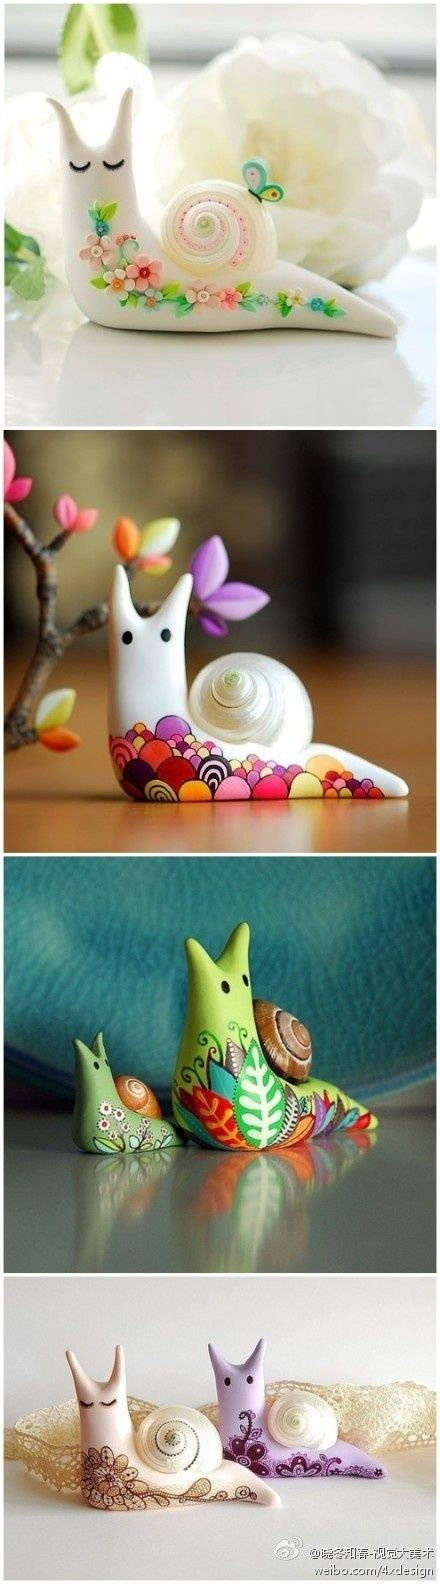 Painted snails. So cute!  Some ideas are going through my head... Shells, Fimo and paint with different themes